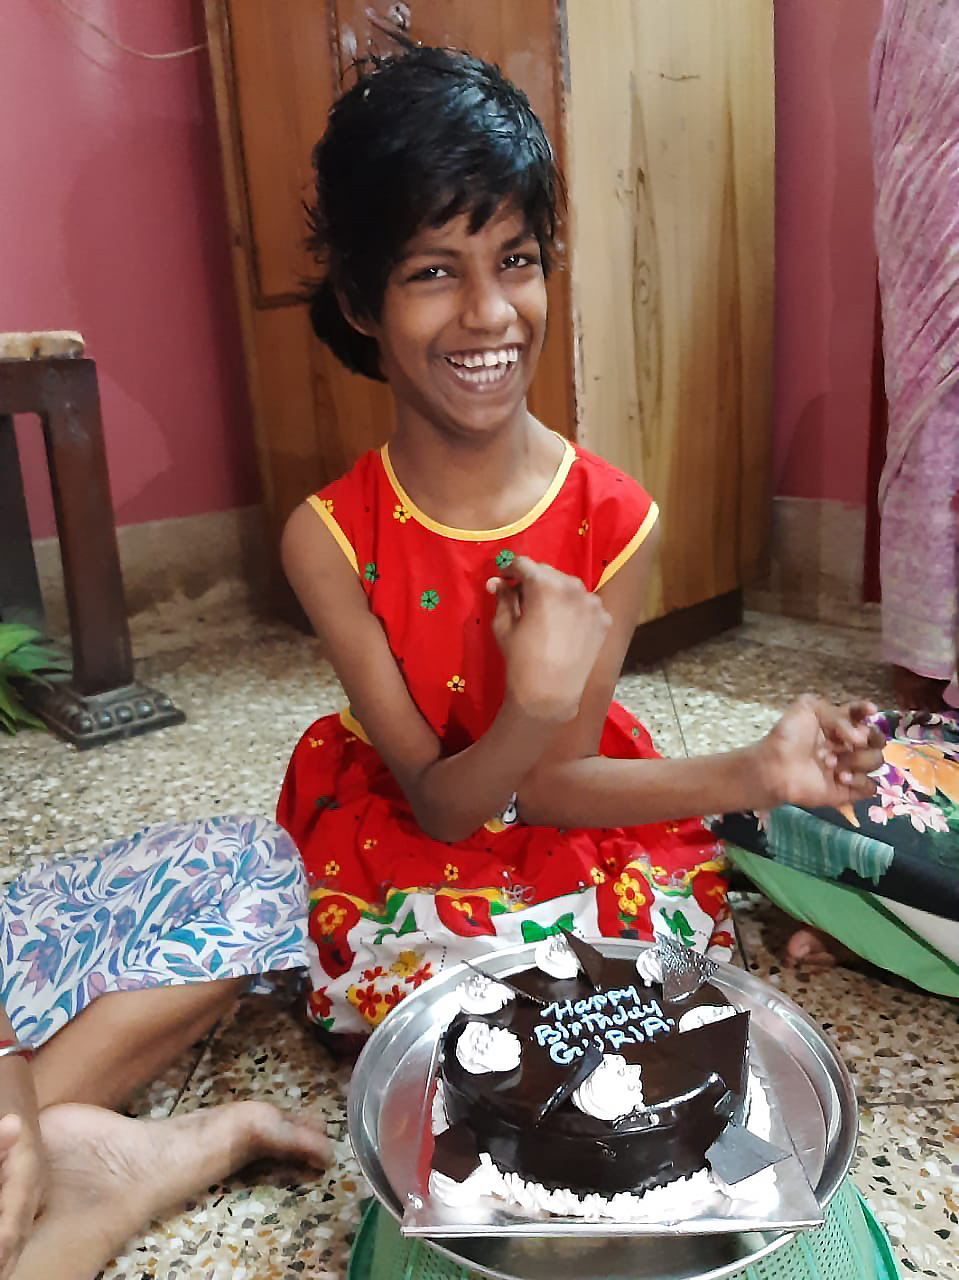 shuktara - Guria and her birthday cake